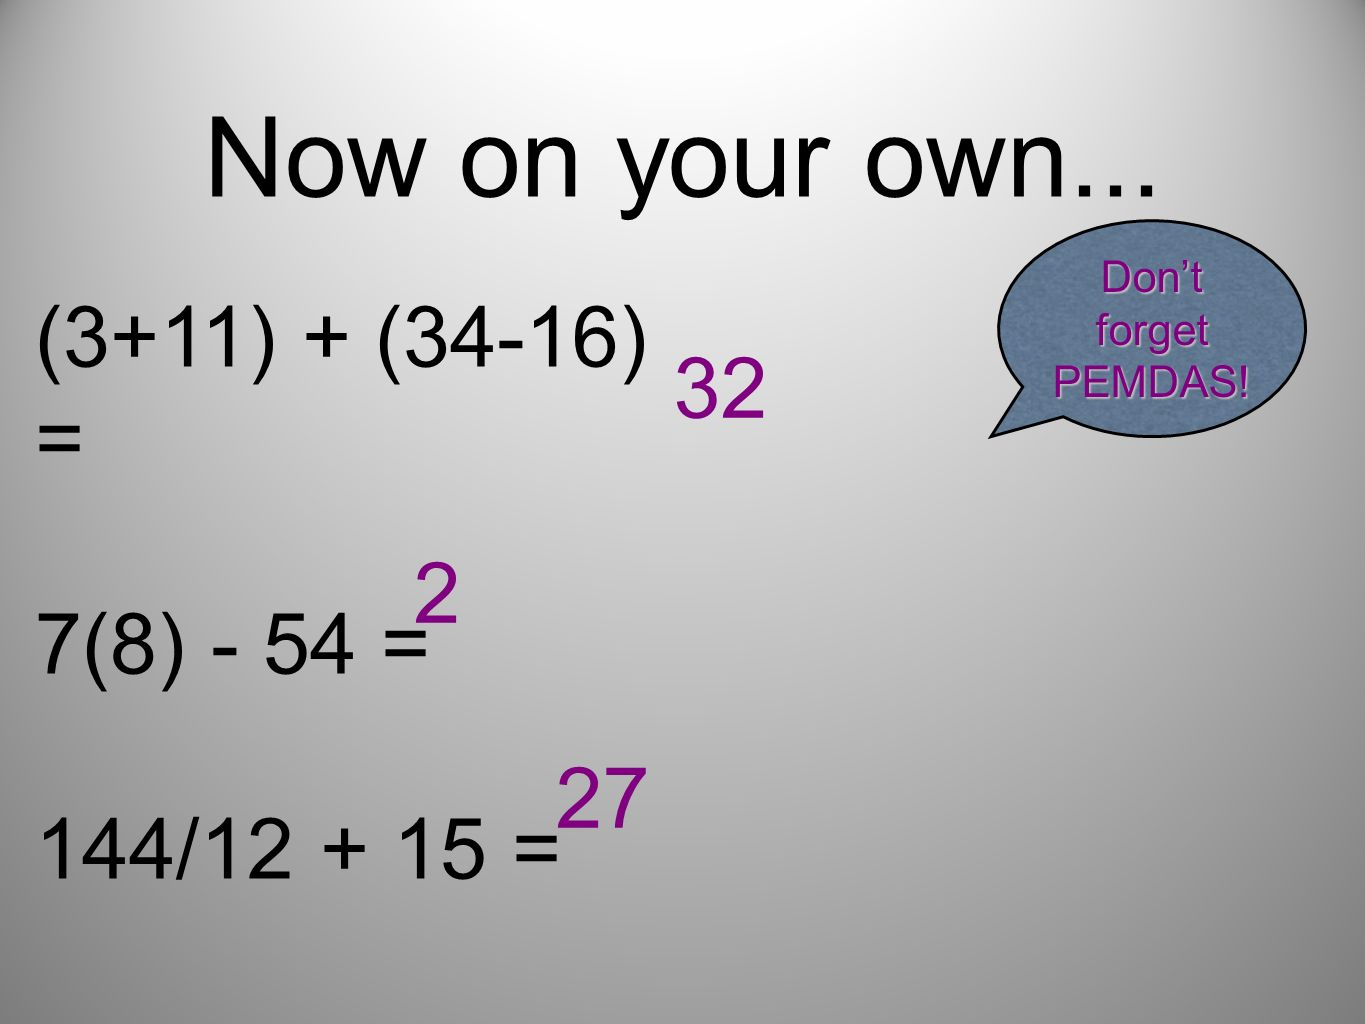 Now on your own... (3+11) + (34-16) = 32 7(8) - 54 = 2 144/12 + 15 =